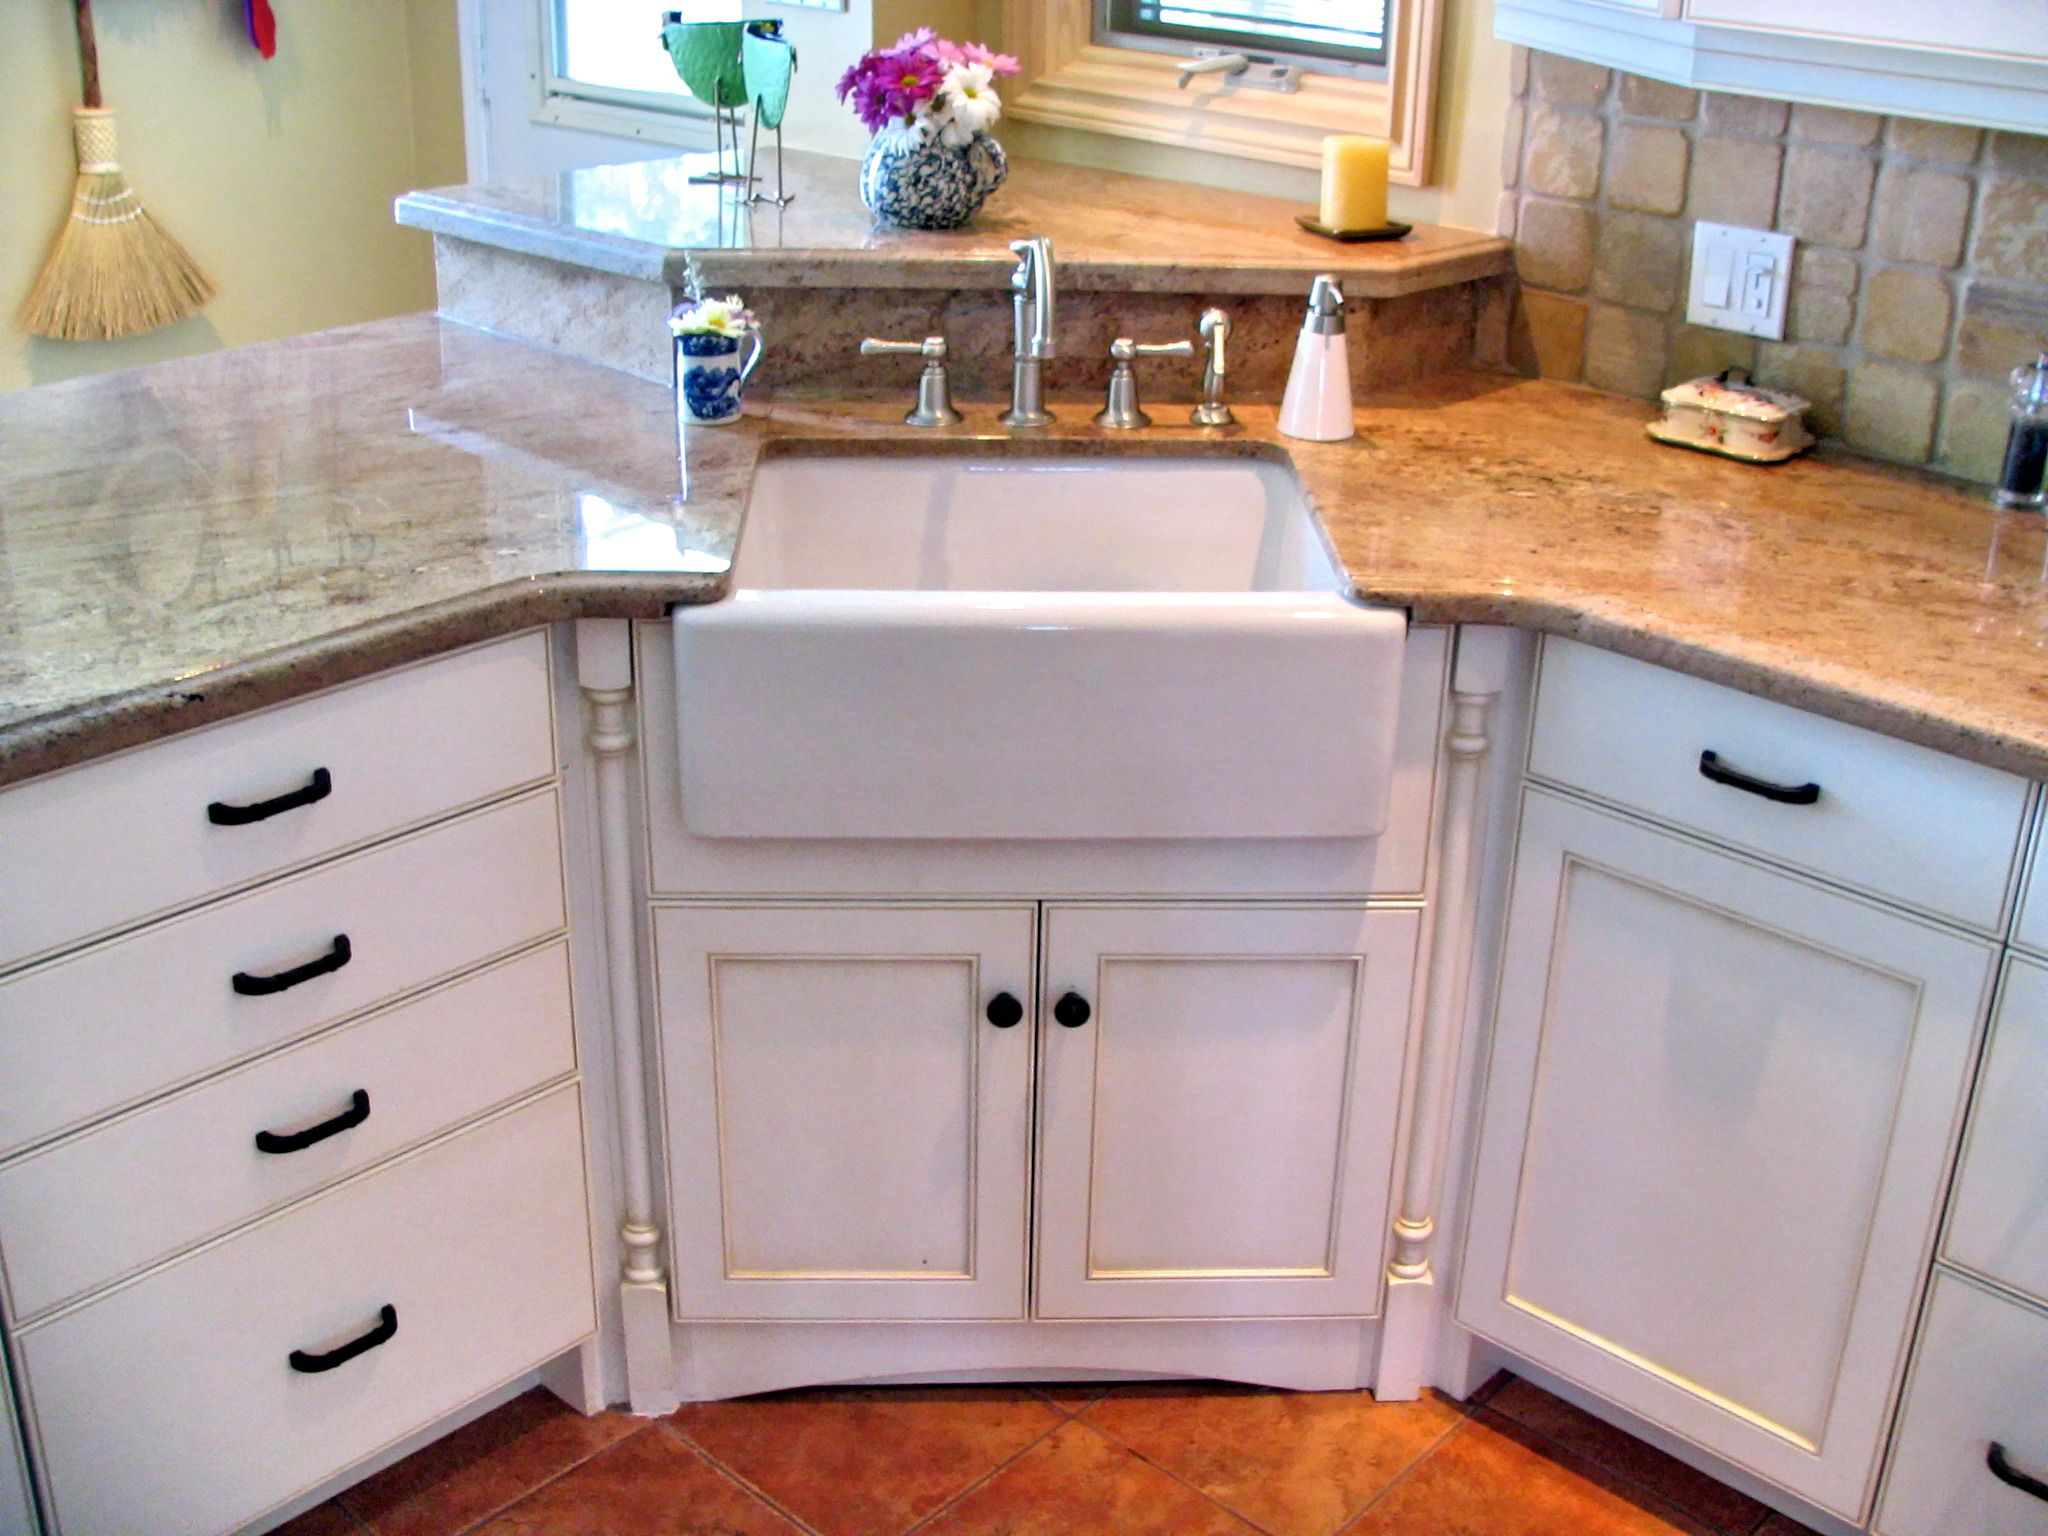 Corner Undermounted Apron Sink Flanked By Decorative Turned Post Columns Cabinet Connection